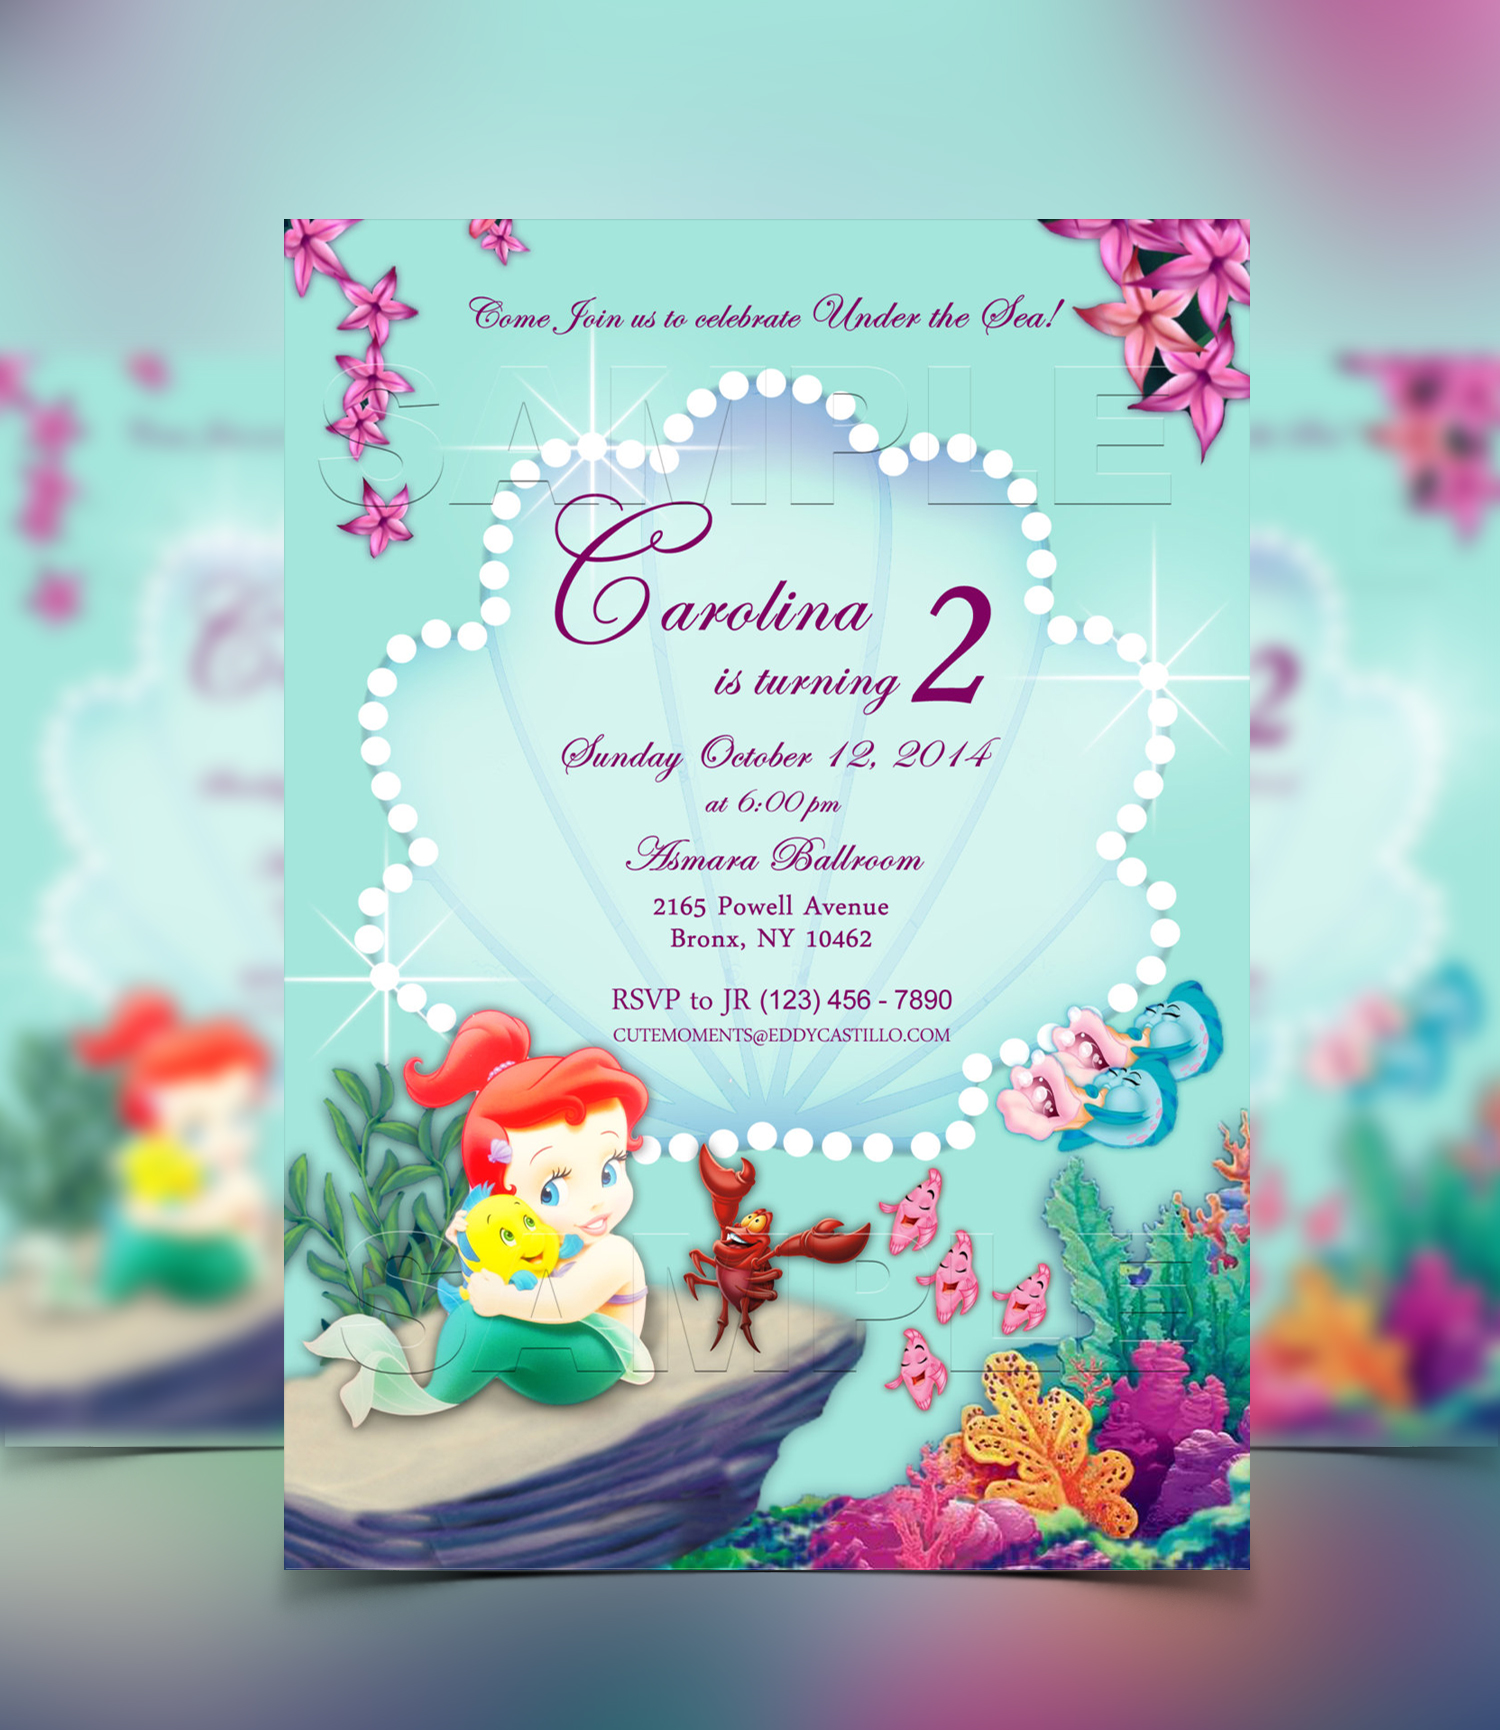 Cutemoments by jr disney baby princess ariel the little mermaid princess ariel disney princess personalized digital invitation solutioingenieria Image collections